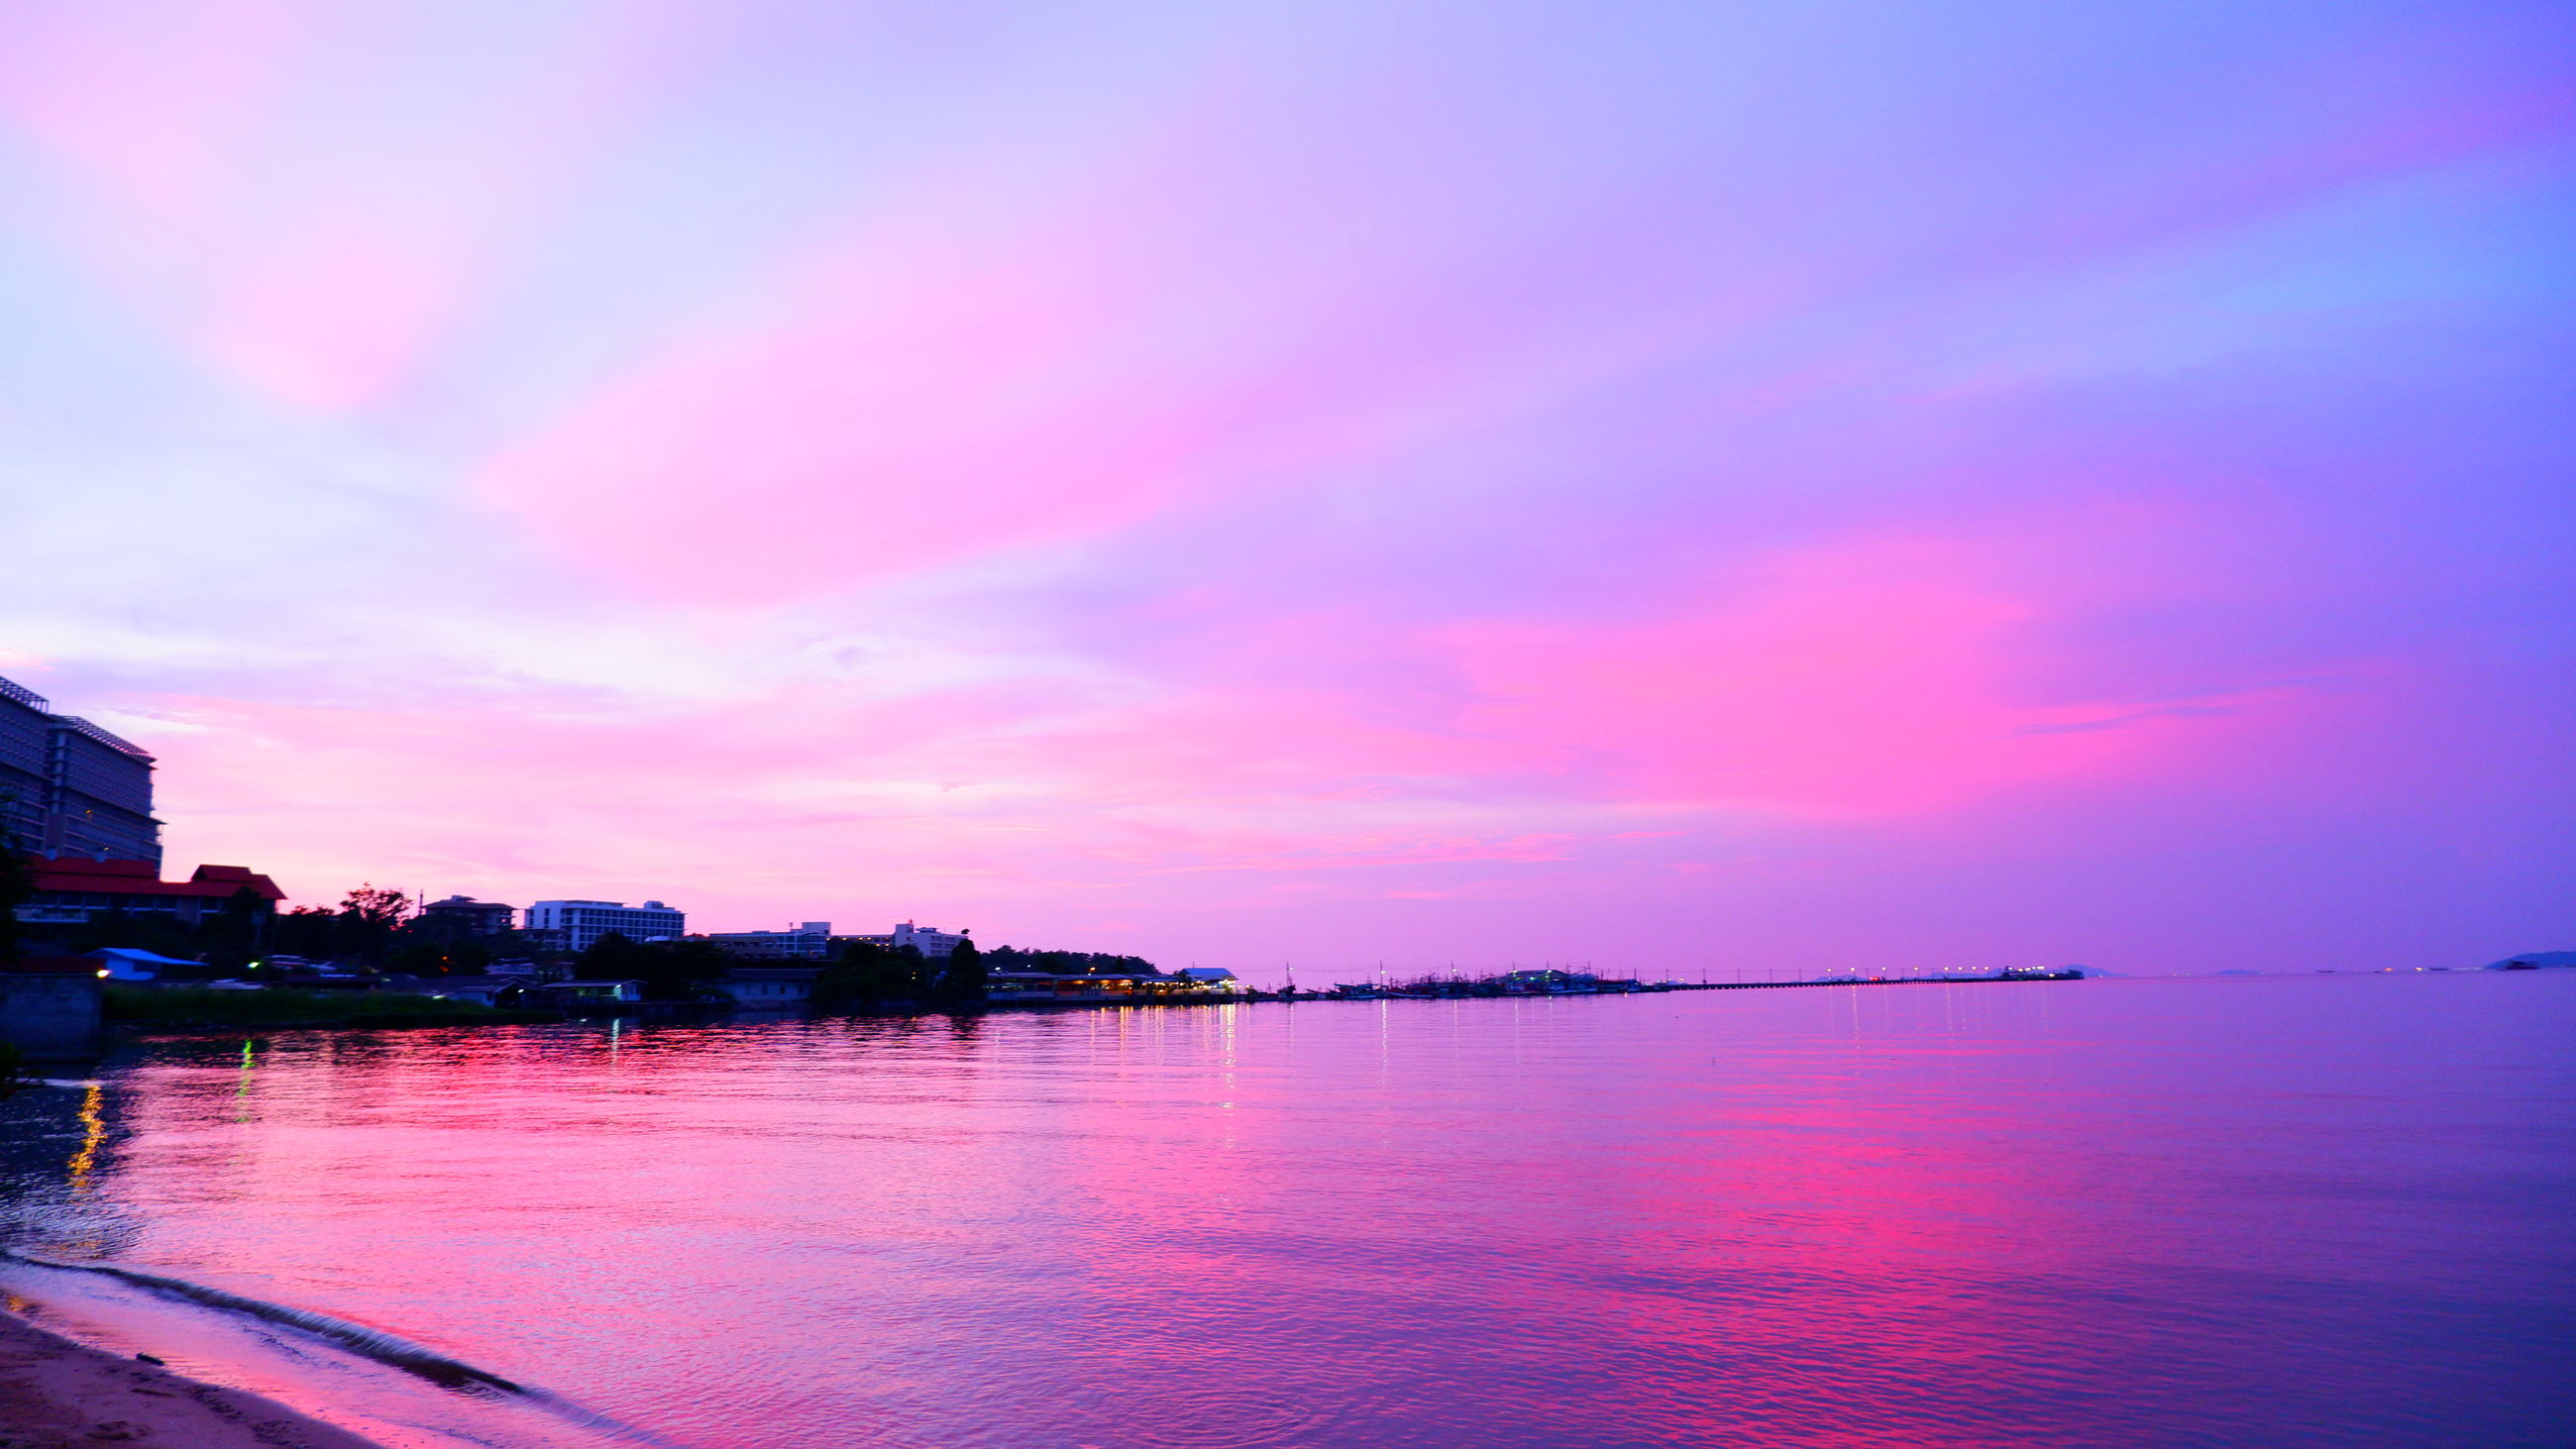 water, sky, sea, sunset, cloud, dawn, beauty in nature, reflection, horizon, scenics - nature, nature, tranquility, architecture, pink, afterglow, evening, no people, tranquil scene, travel destinations, purple, multi colored, ocean, built structure, outdoors, beach, city, landscape, dramatic sky, idyllic, land, magenta, travel, building exterior, environment, blue, building